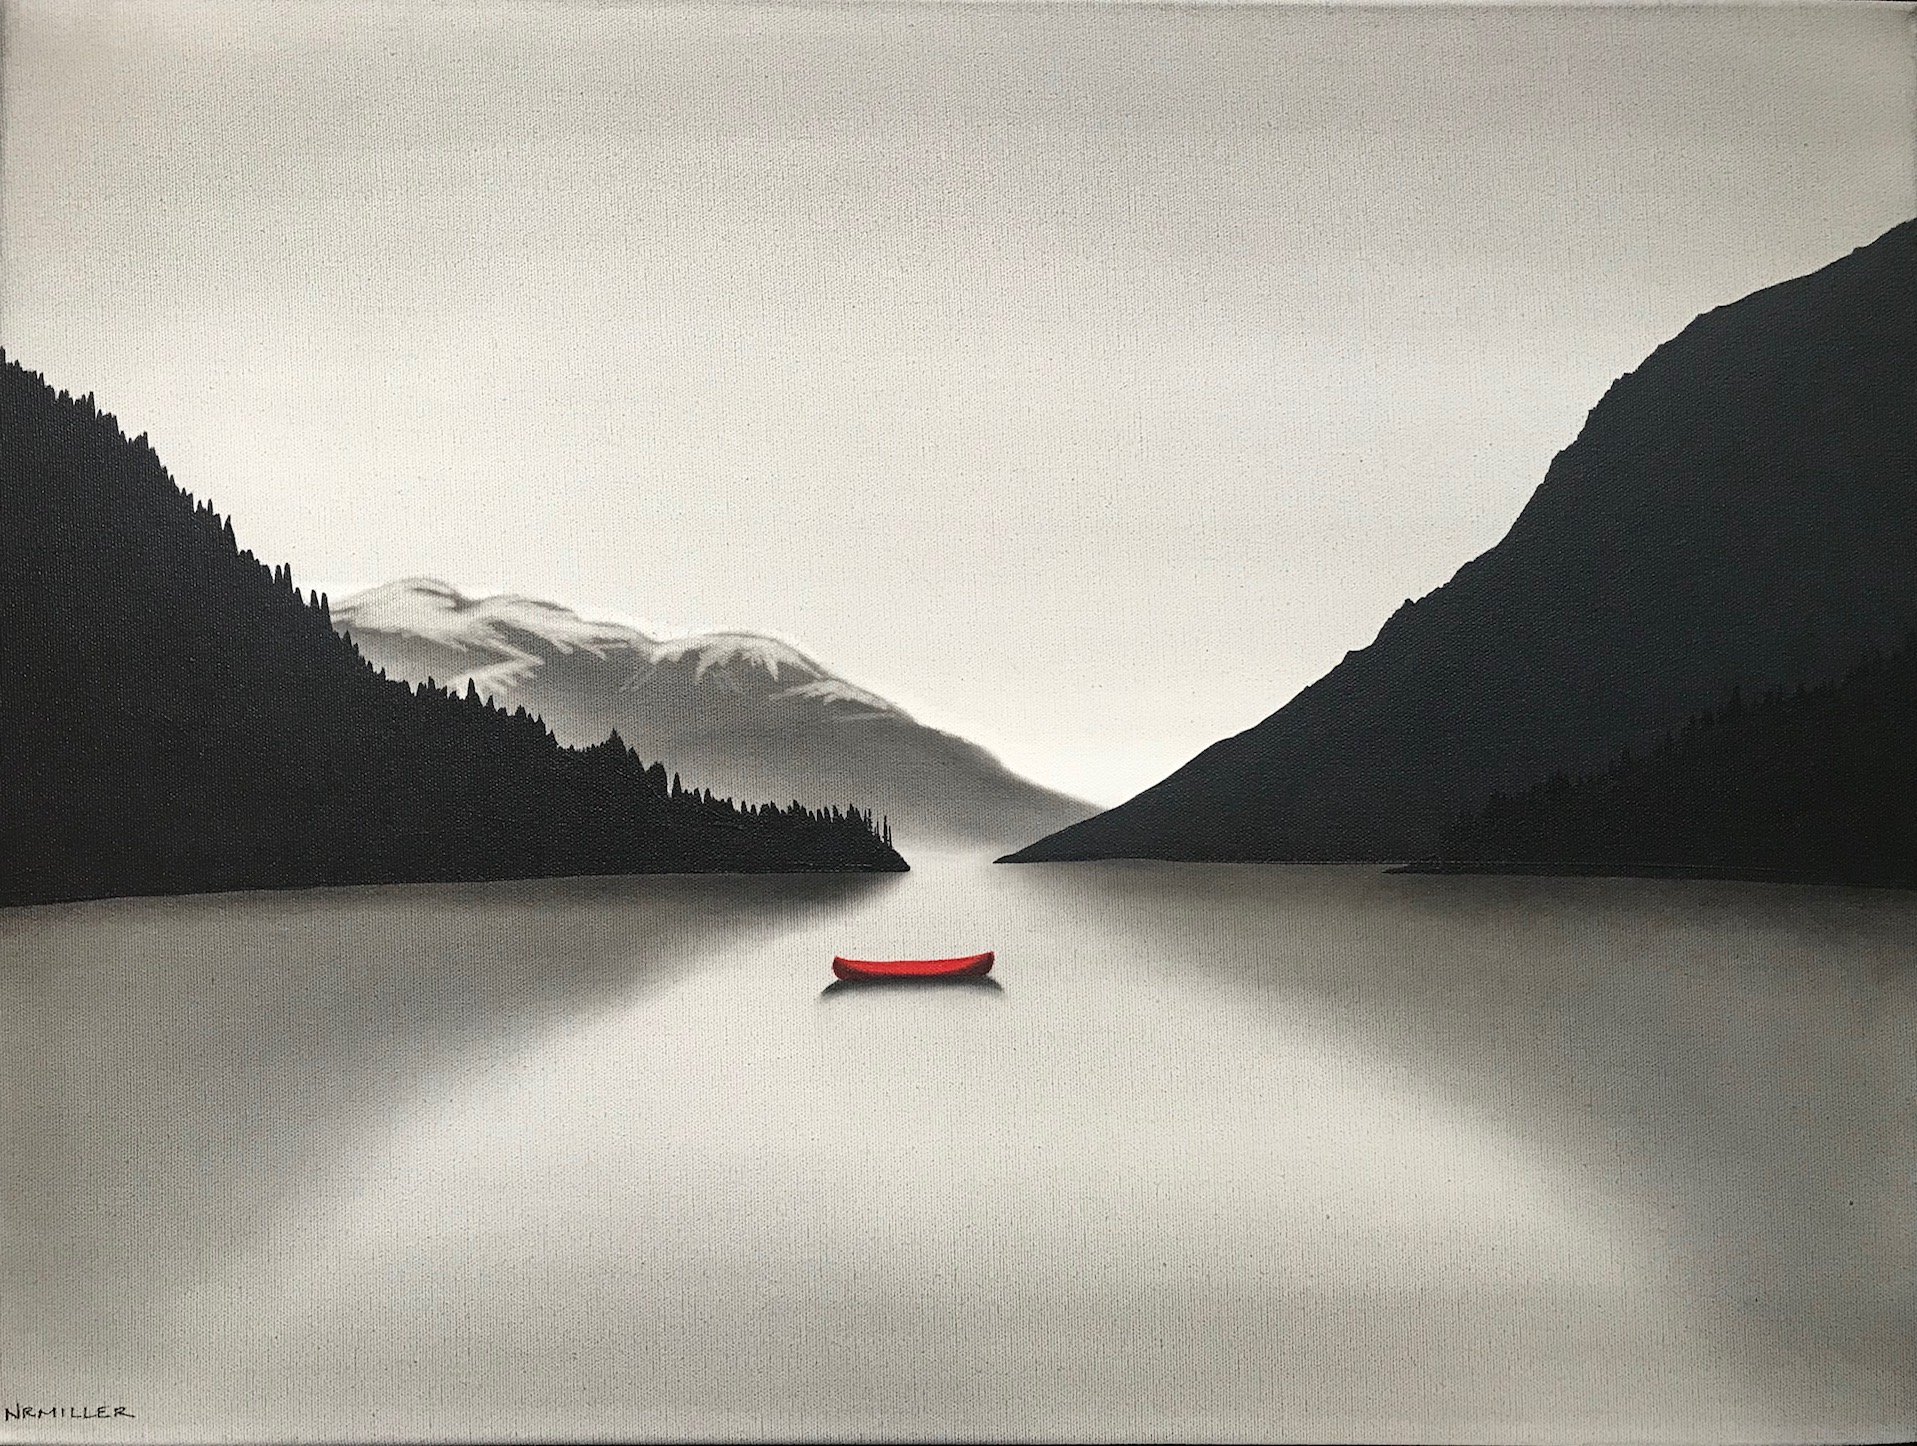 Losing Yourself on a Lake, mixed media painting by Natasha Miller | Effusion Art Gallery + Cast Glass Studio, Invermere BC